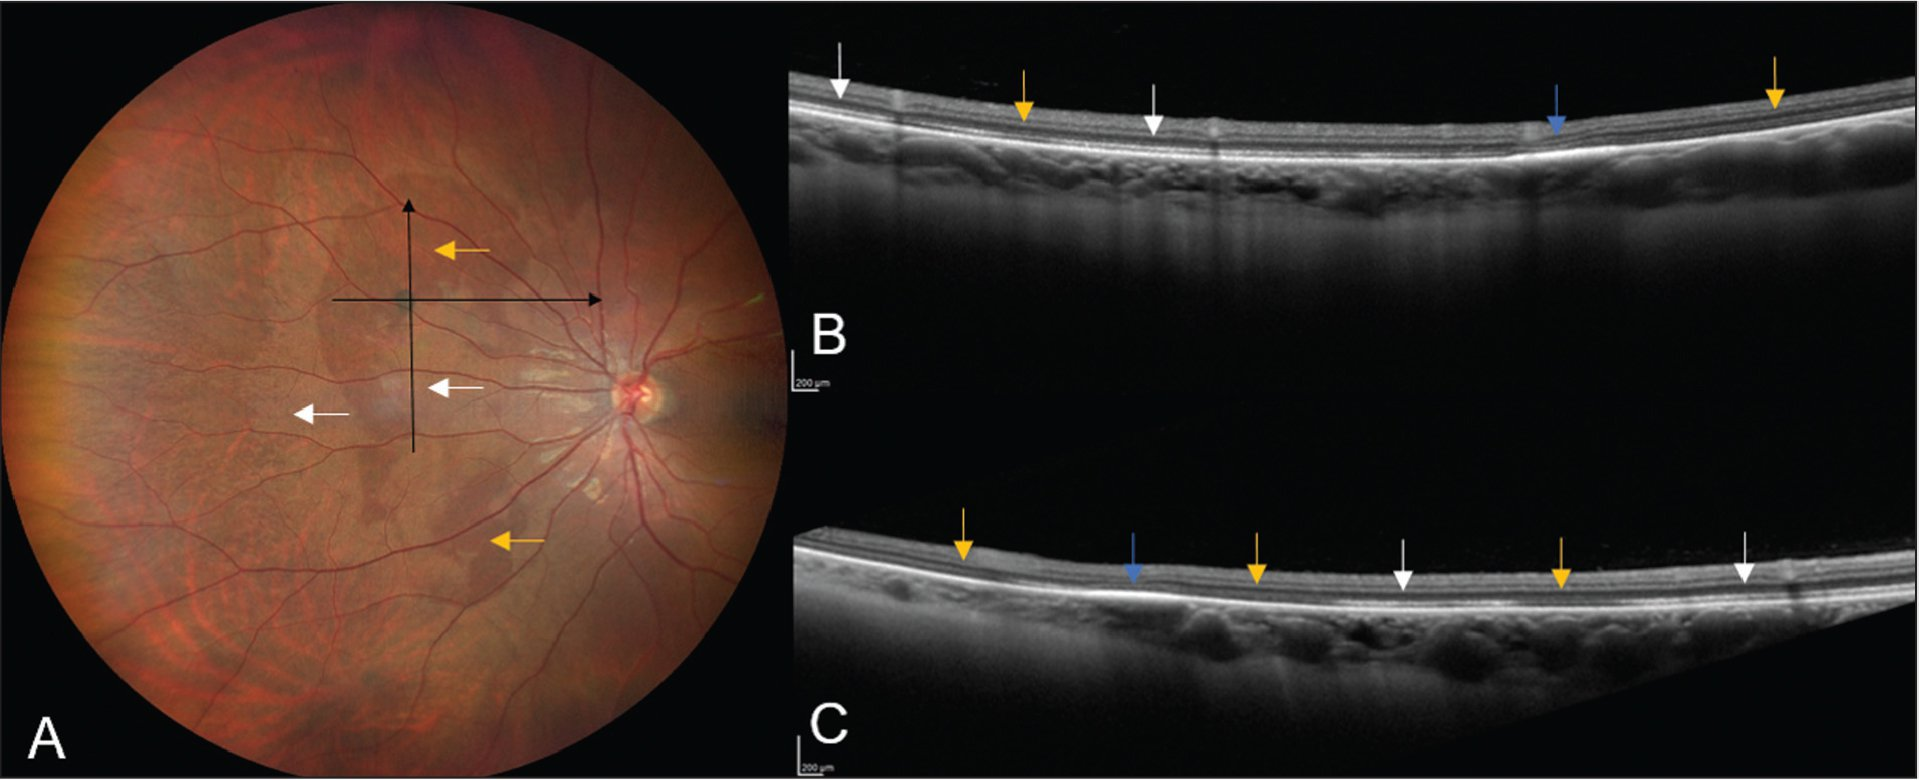 A 29-year-old woman with a small focus of congenital hypertrophy of the retinal pigment epithelium in the nasal fundus was noted to have (A) surrounding white without pressure (white arrows) and dark without pressure (yellow arrows) abnormalities. Optical coherence tomography (OCT) (vertical cut) shows (B) the transition from hyperreflectivity (white without pressure [white arrows]) to hyporeflectivity (dark without pressure [yellow arrows]) of the ellipsoid layer with thickened retinal pigment epithelium (blue arrow) corresponding to congenital hypertrophy of the retinal pigment epithelium. OCT (horizontal cut) shows (C) similar outer retinal transitions from hyporeflectivity (dark without pressure [yellow arrows]) to hyperreflectivity (white without pressure [white arrows]) surrounding congenital hypertrophy of the retinal pigment epithelium (blue arrow).